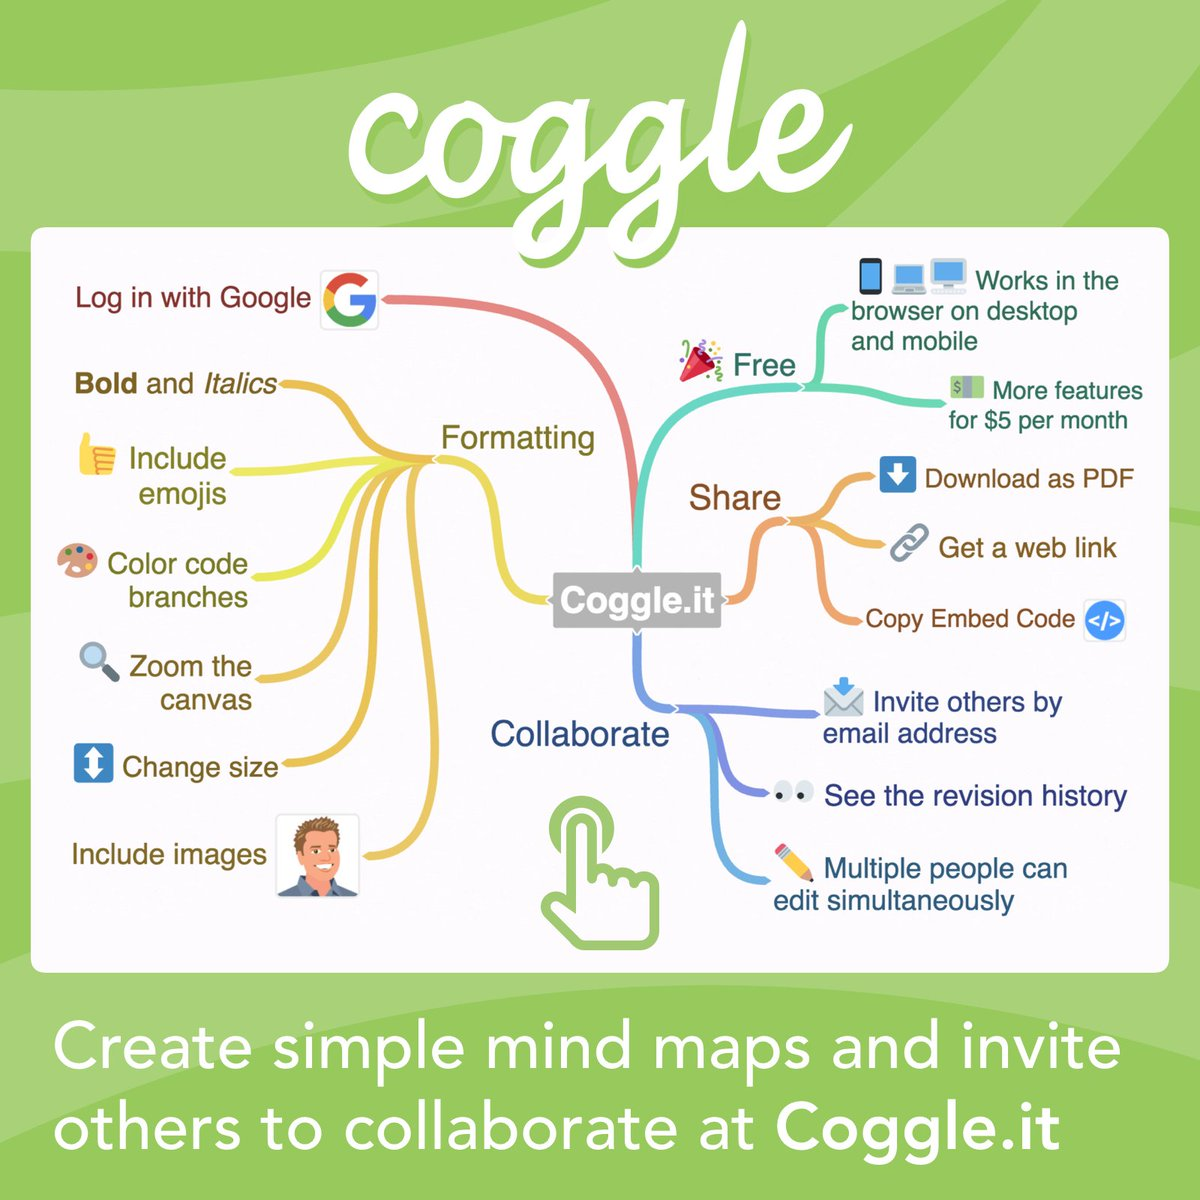 tony vincent on twitter free web based tool for mind mapping coggleit httpstco9jocrzcpqz - Web Based Mind Mapping Free